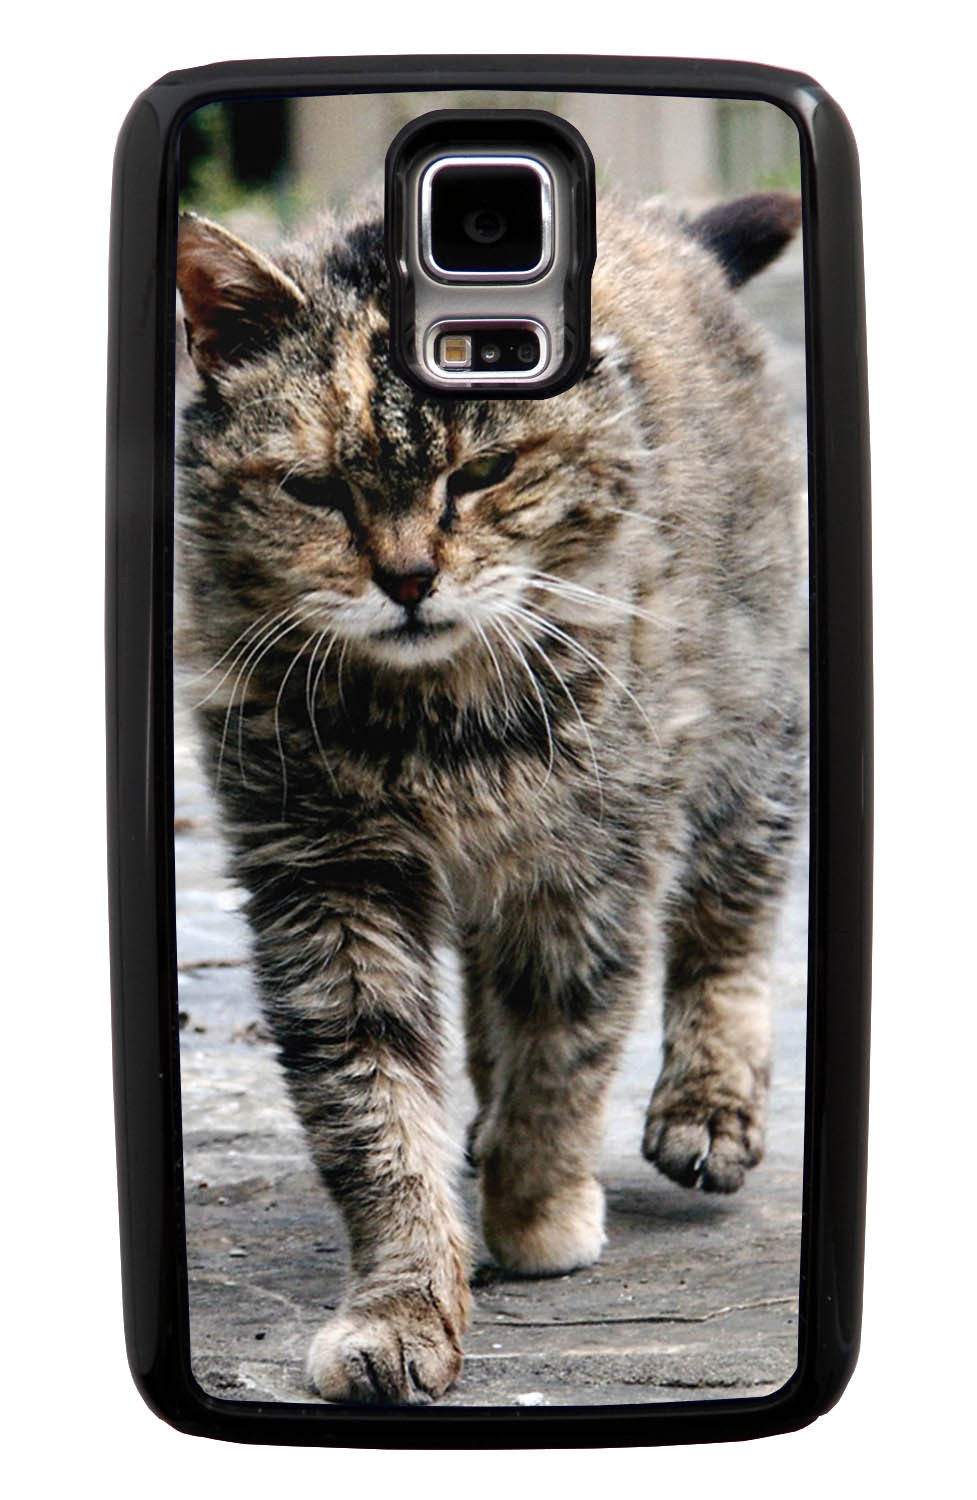 Samsung Galaxy S5 / SV Cat Case - Strutting Cat Photo - Cute Pictures - Black Tough Hybrid Case